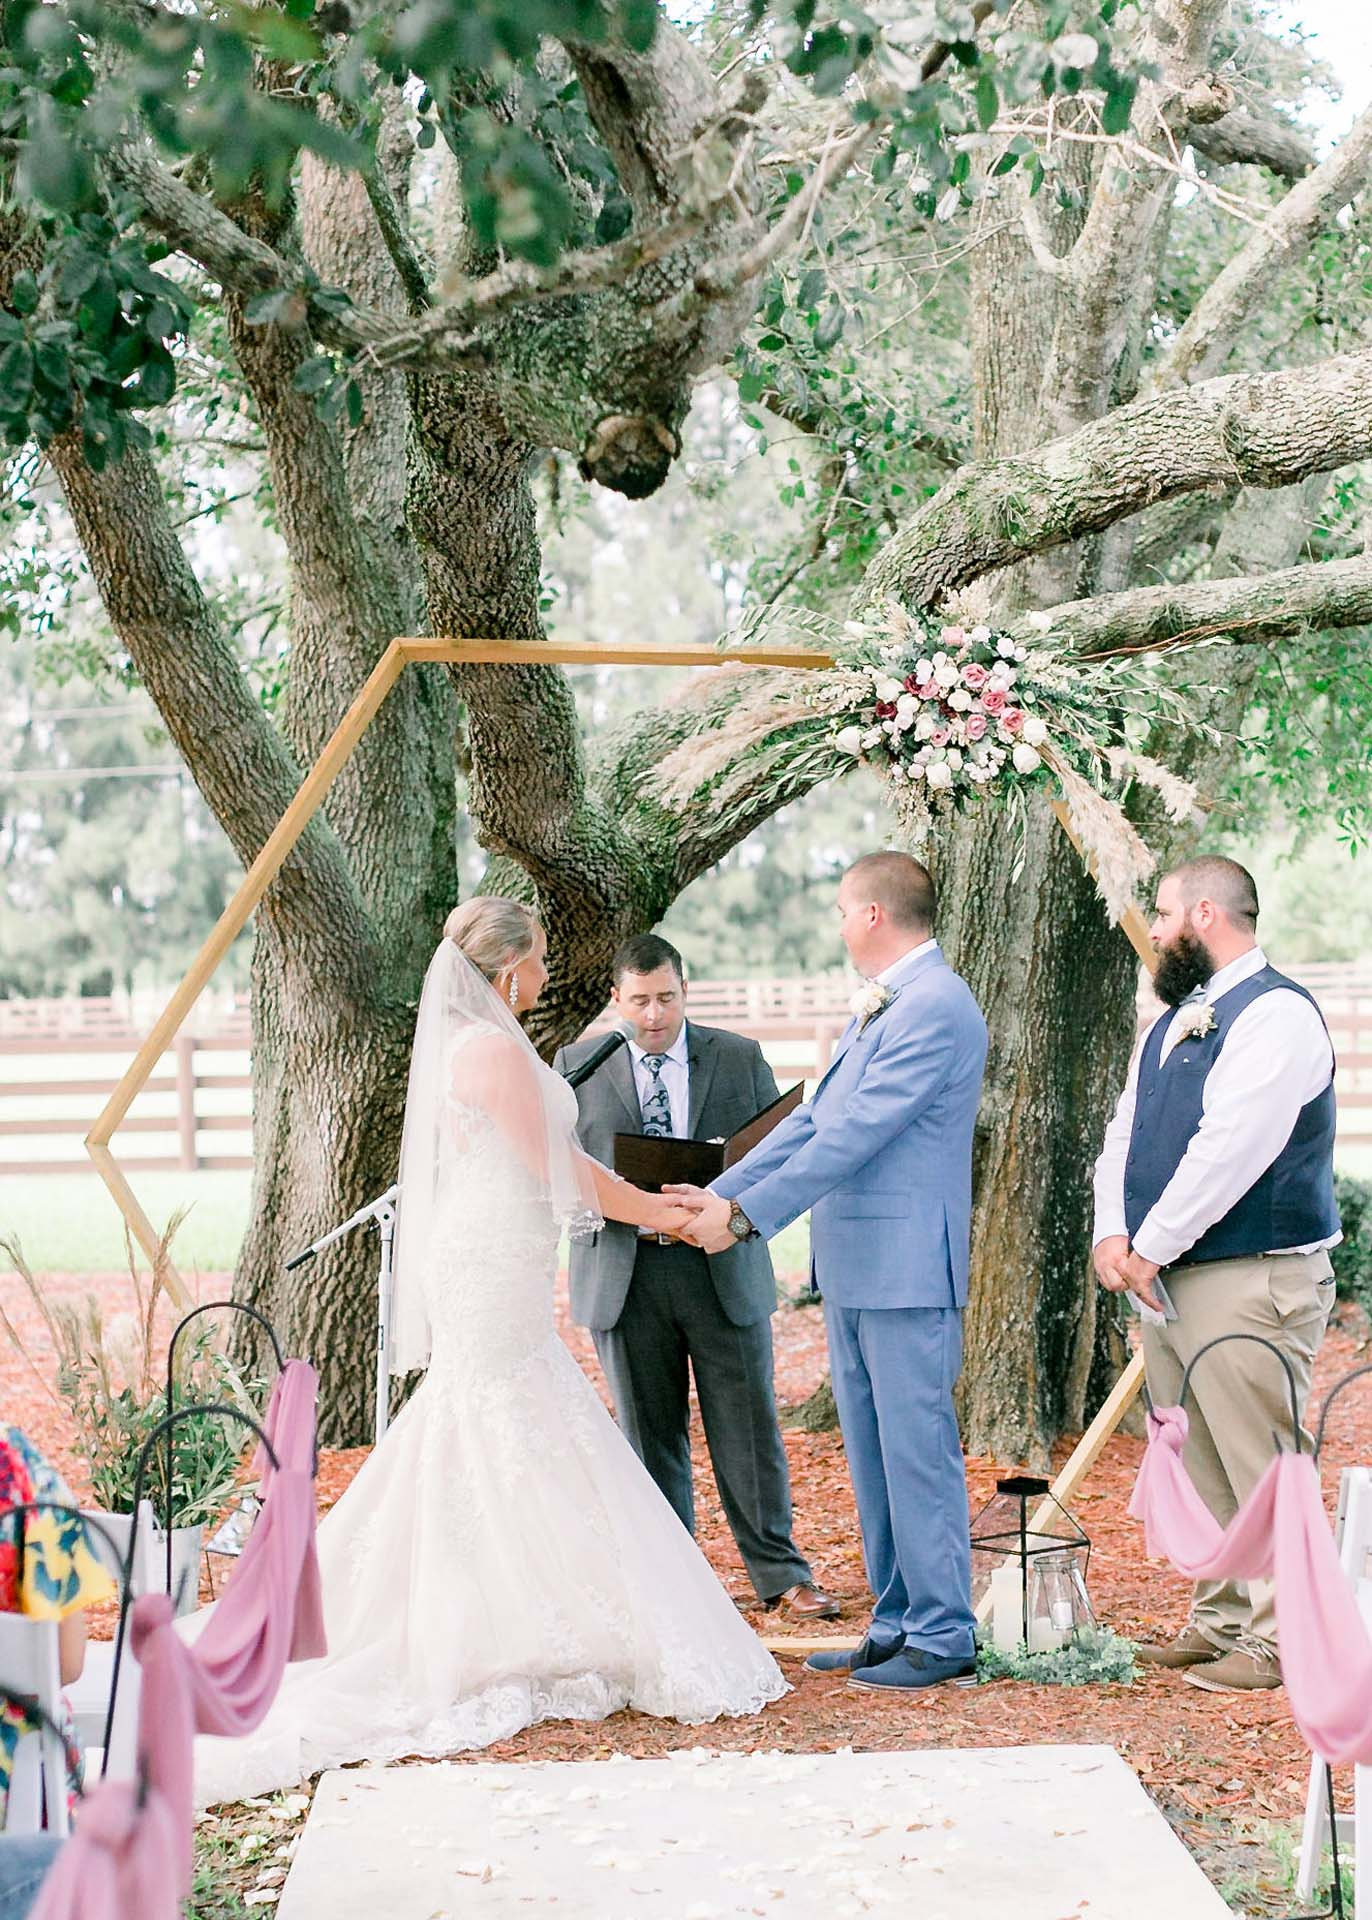 Masters Stables outdoor tree shaded wedding venue chairs-7 ceremony altar. Rustic outdoors